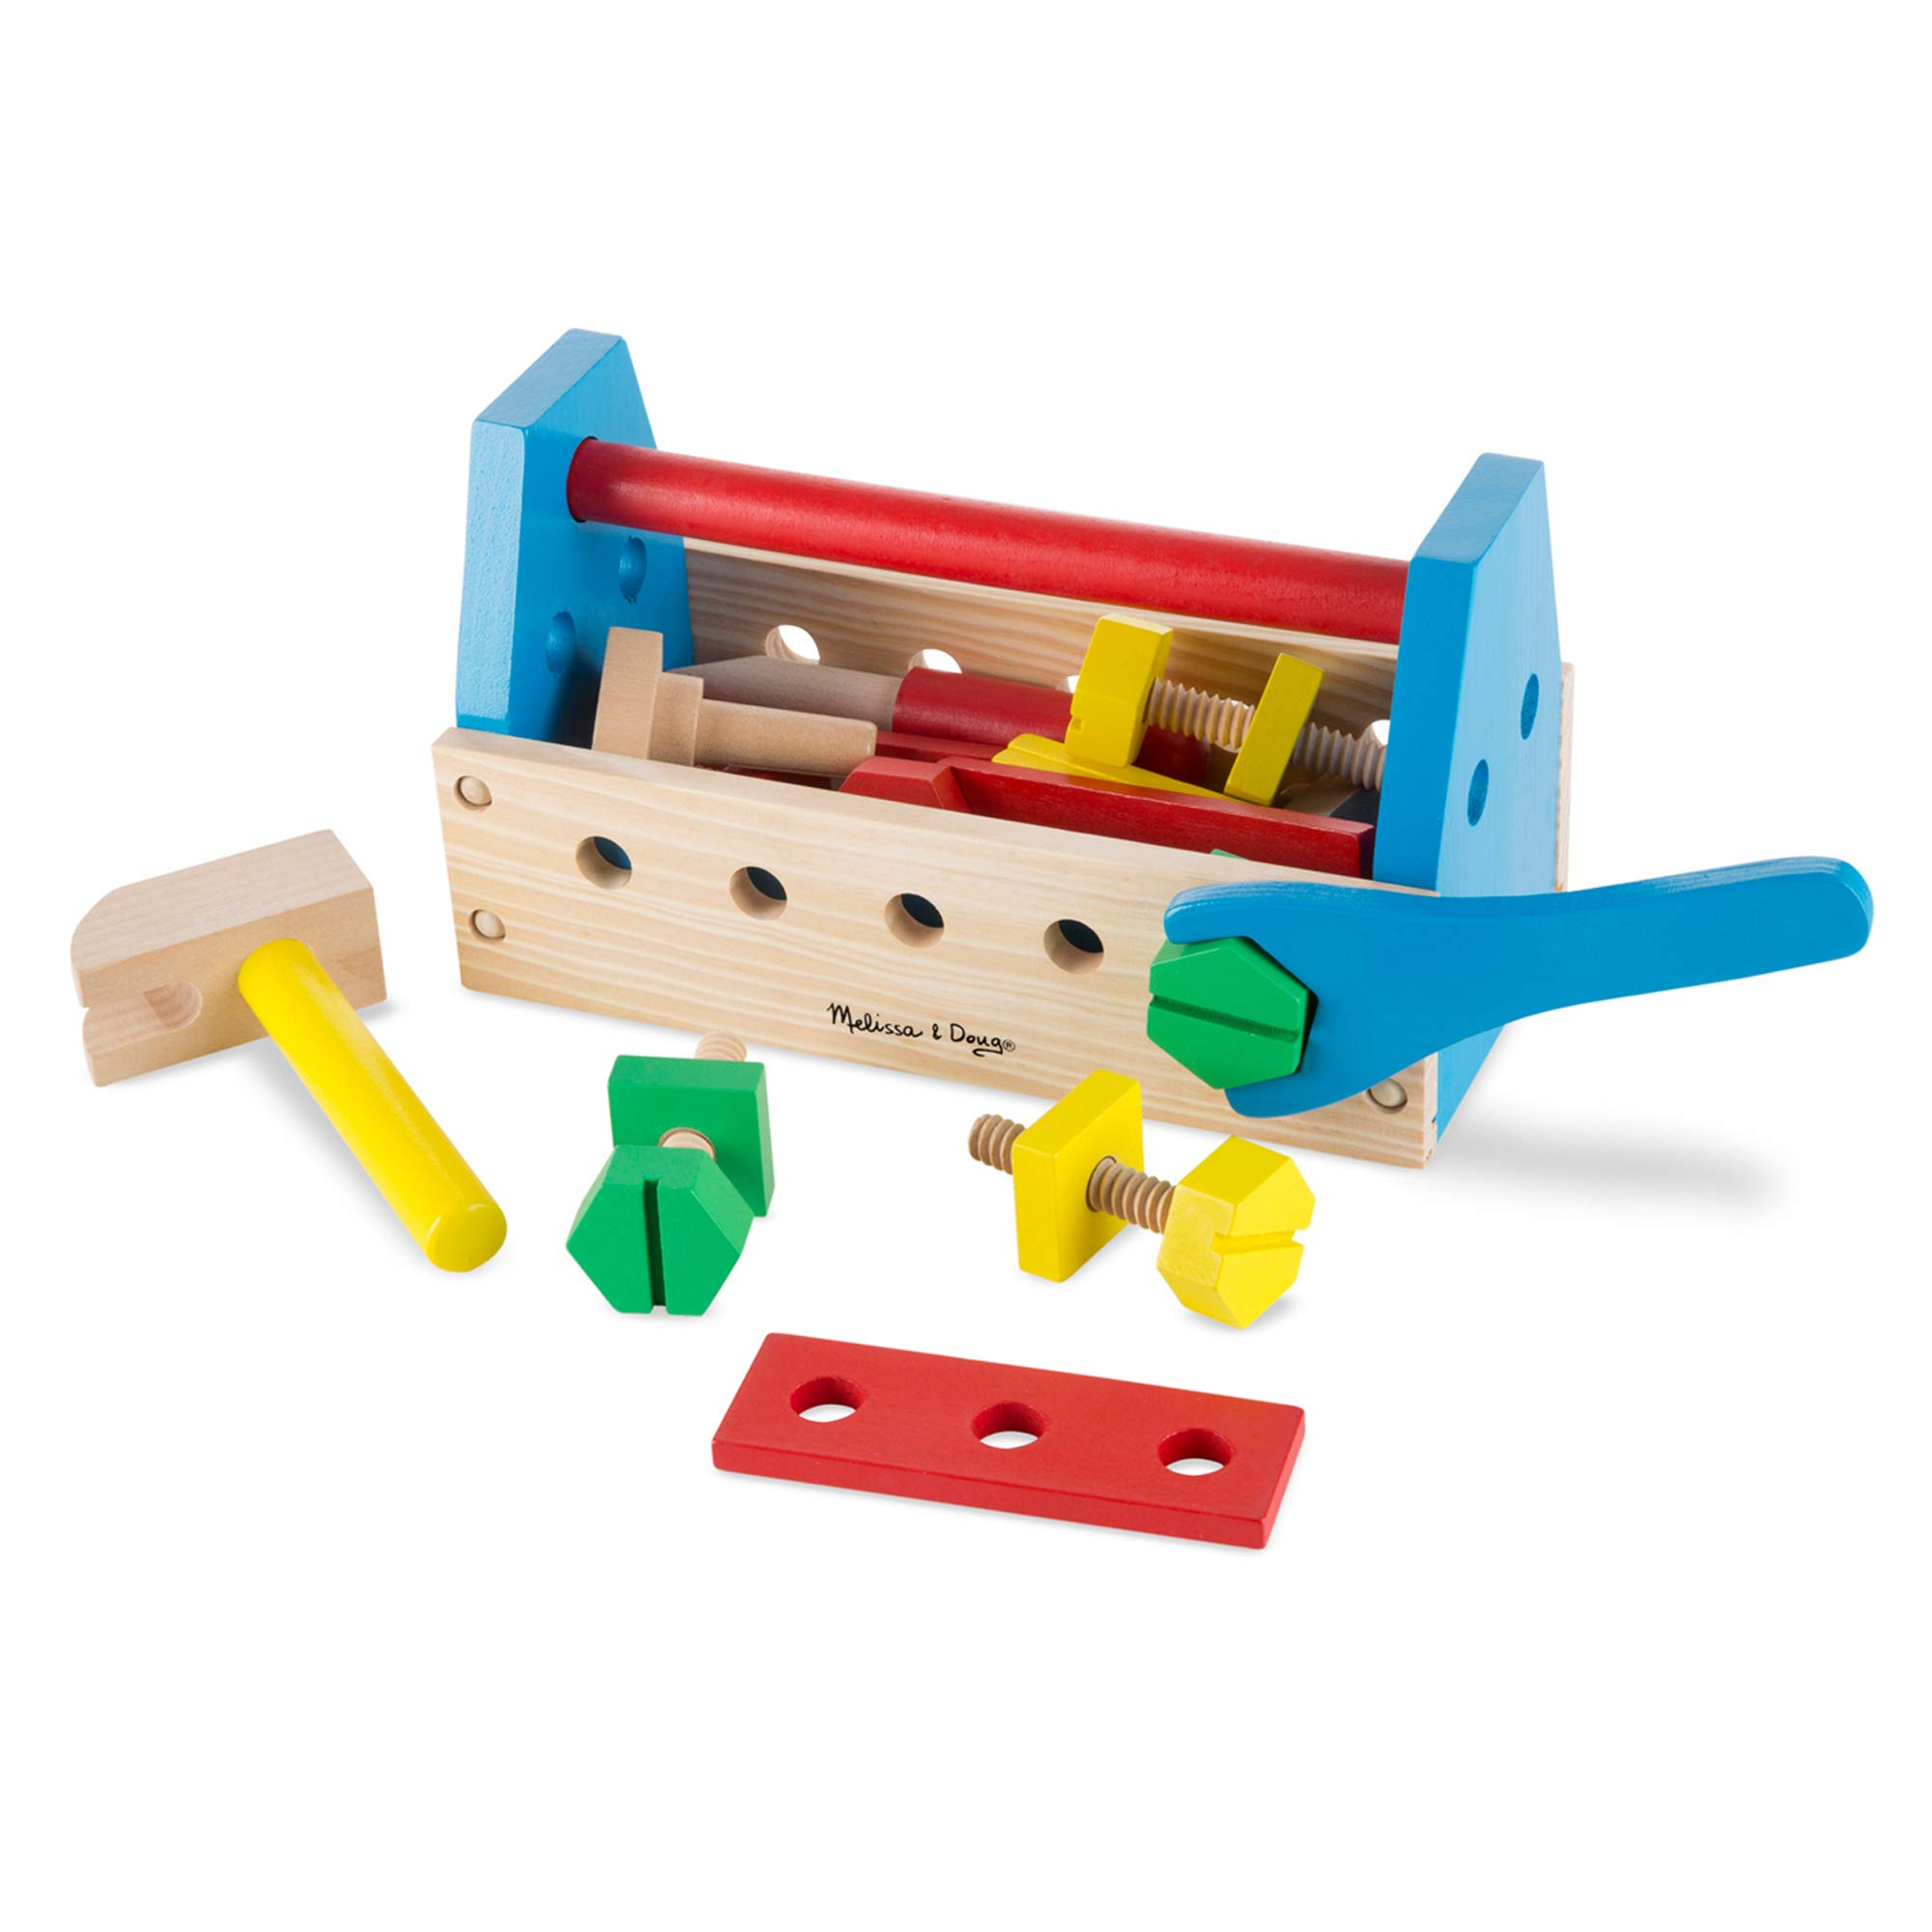 Melissa & Doug Take-Along Tool Kit Wooden Toy (Pretend Play, Sturdy Wooden Construction, 9.9'' H x 5.5'' W x 4.8'' L, Great Gift for Girls and Boys - Best for 3, 4, and 5 Year Olds) by Melissa & Doug